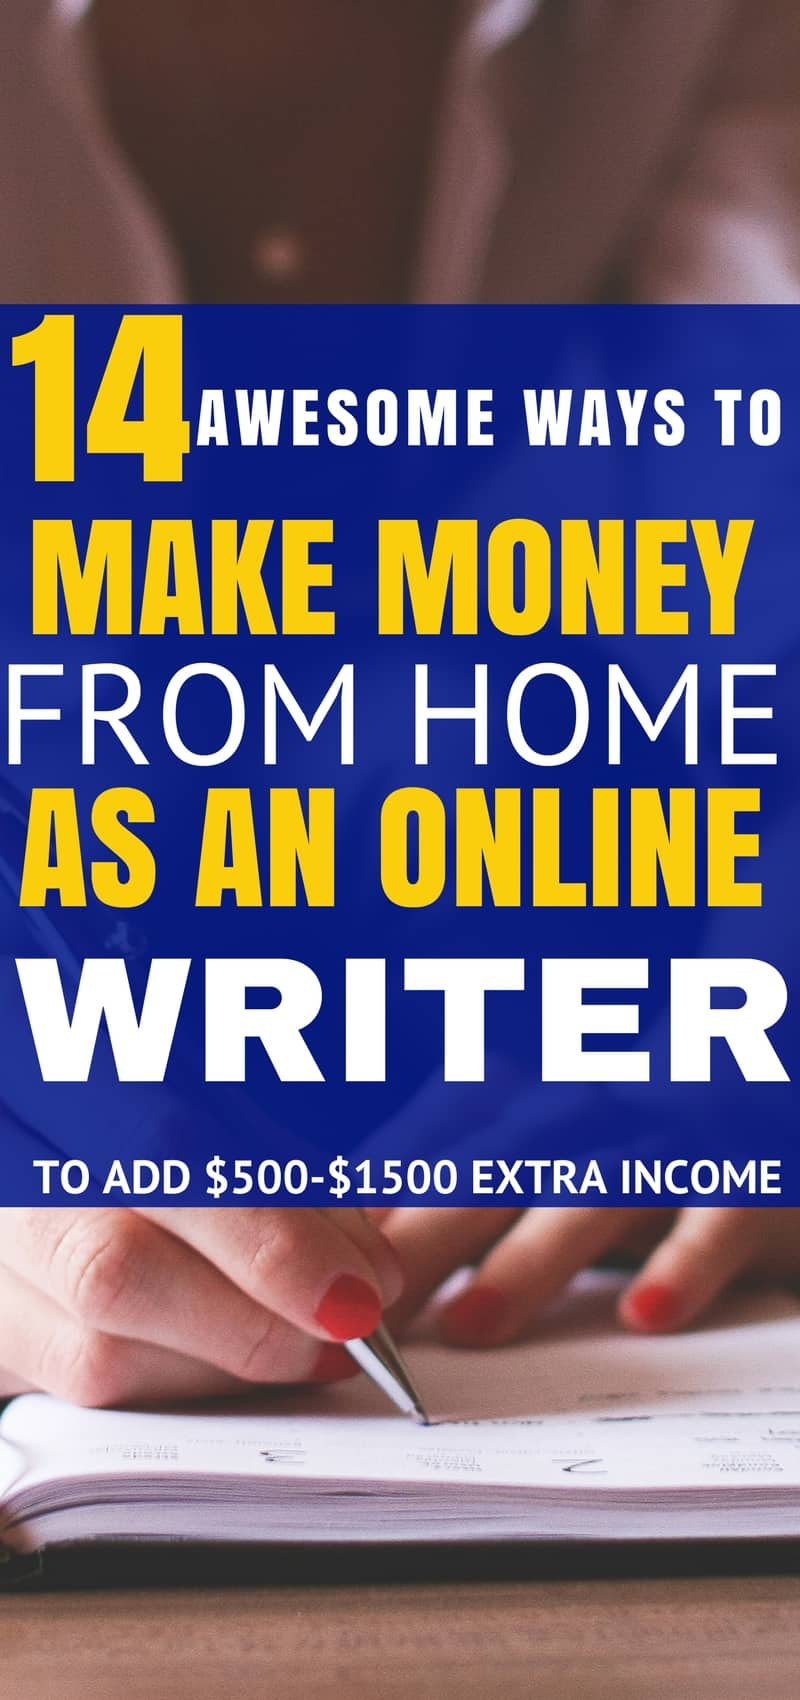 These 14 places to make money from home as on online writer are seriously the best! I'm so happy I found these great tips and tricks! Now I can make some great extra money from the comfort of home! Definitely pinning!